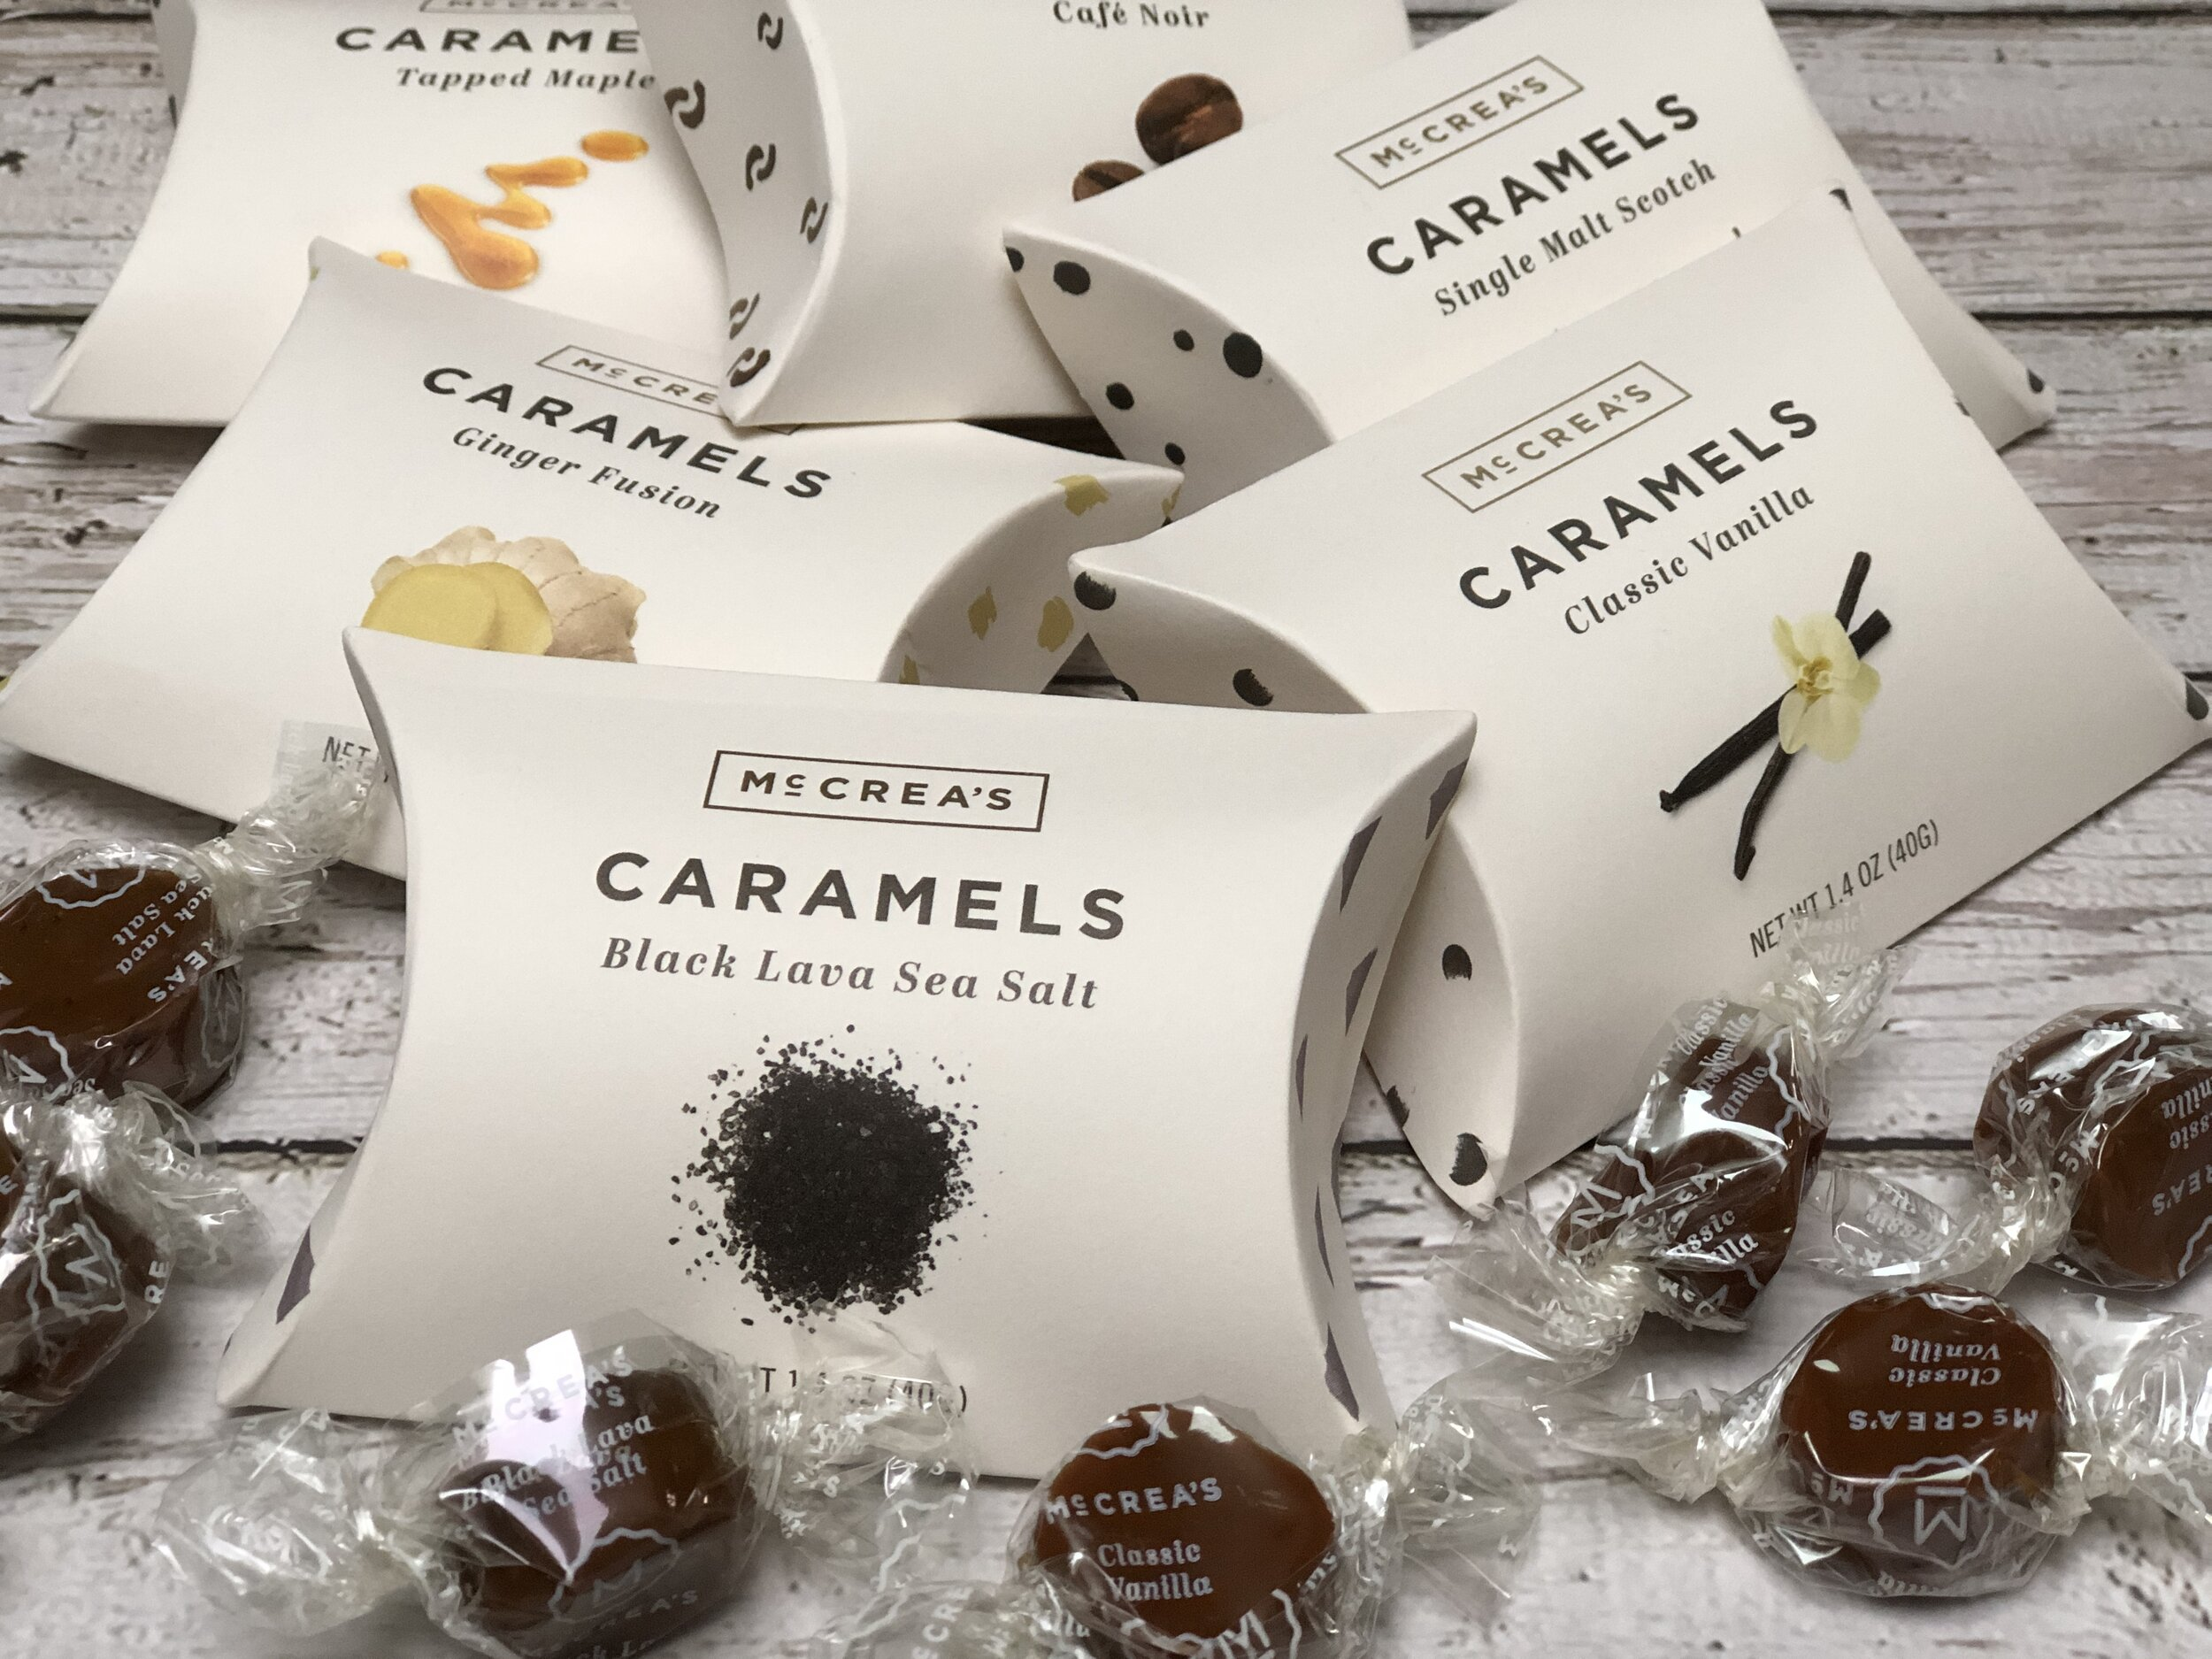 Flavored Caramels, some of the Best Gifts for Foodies.